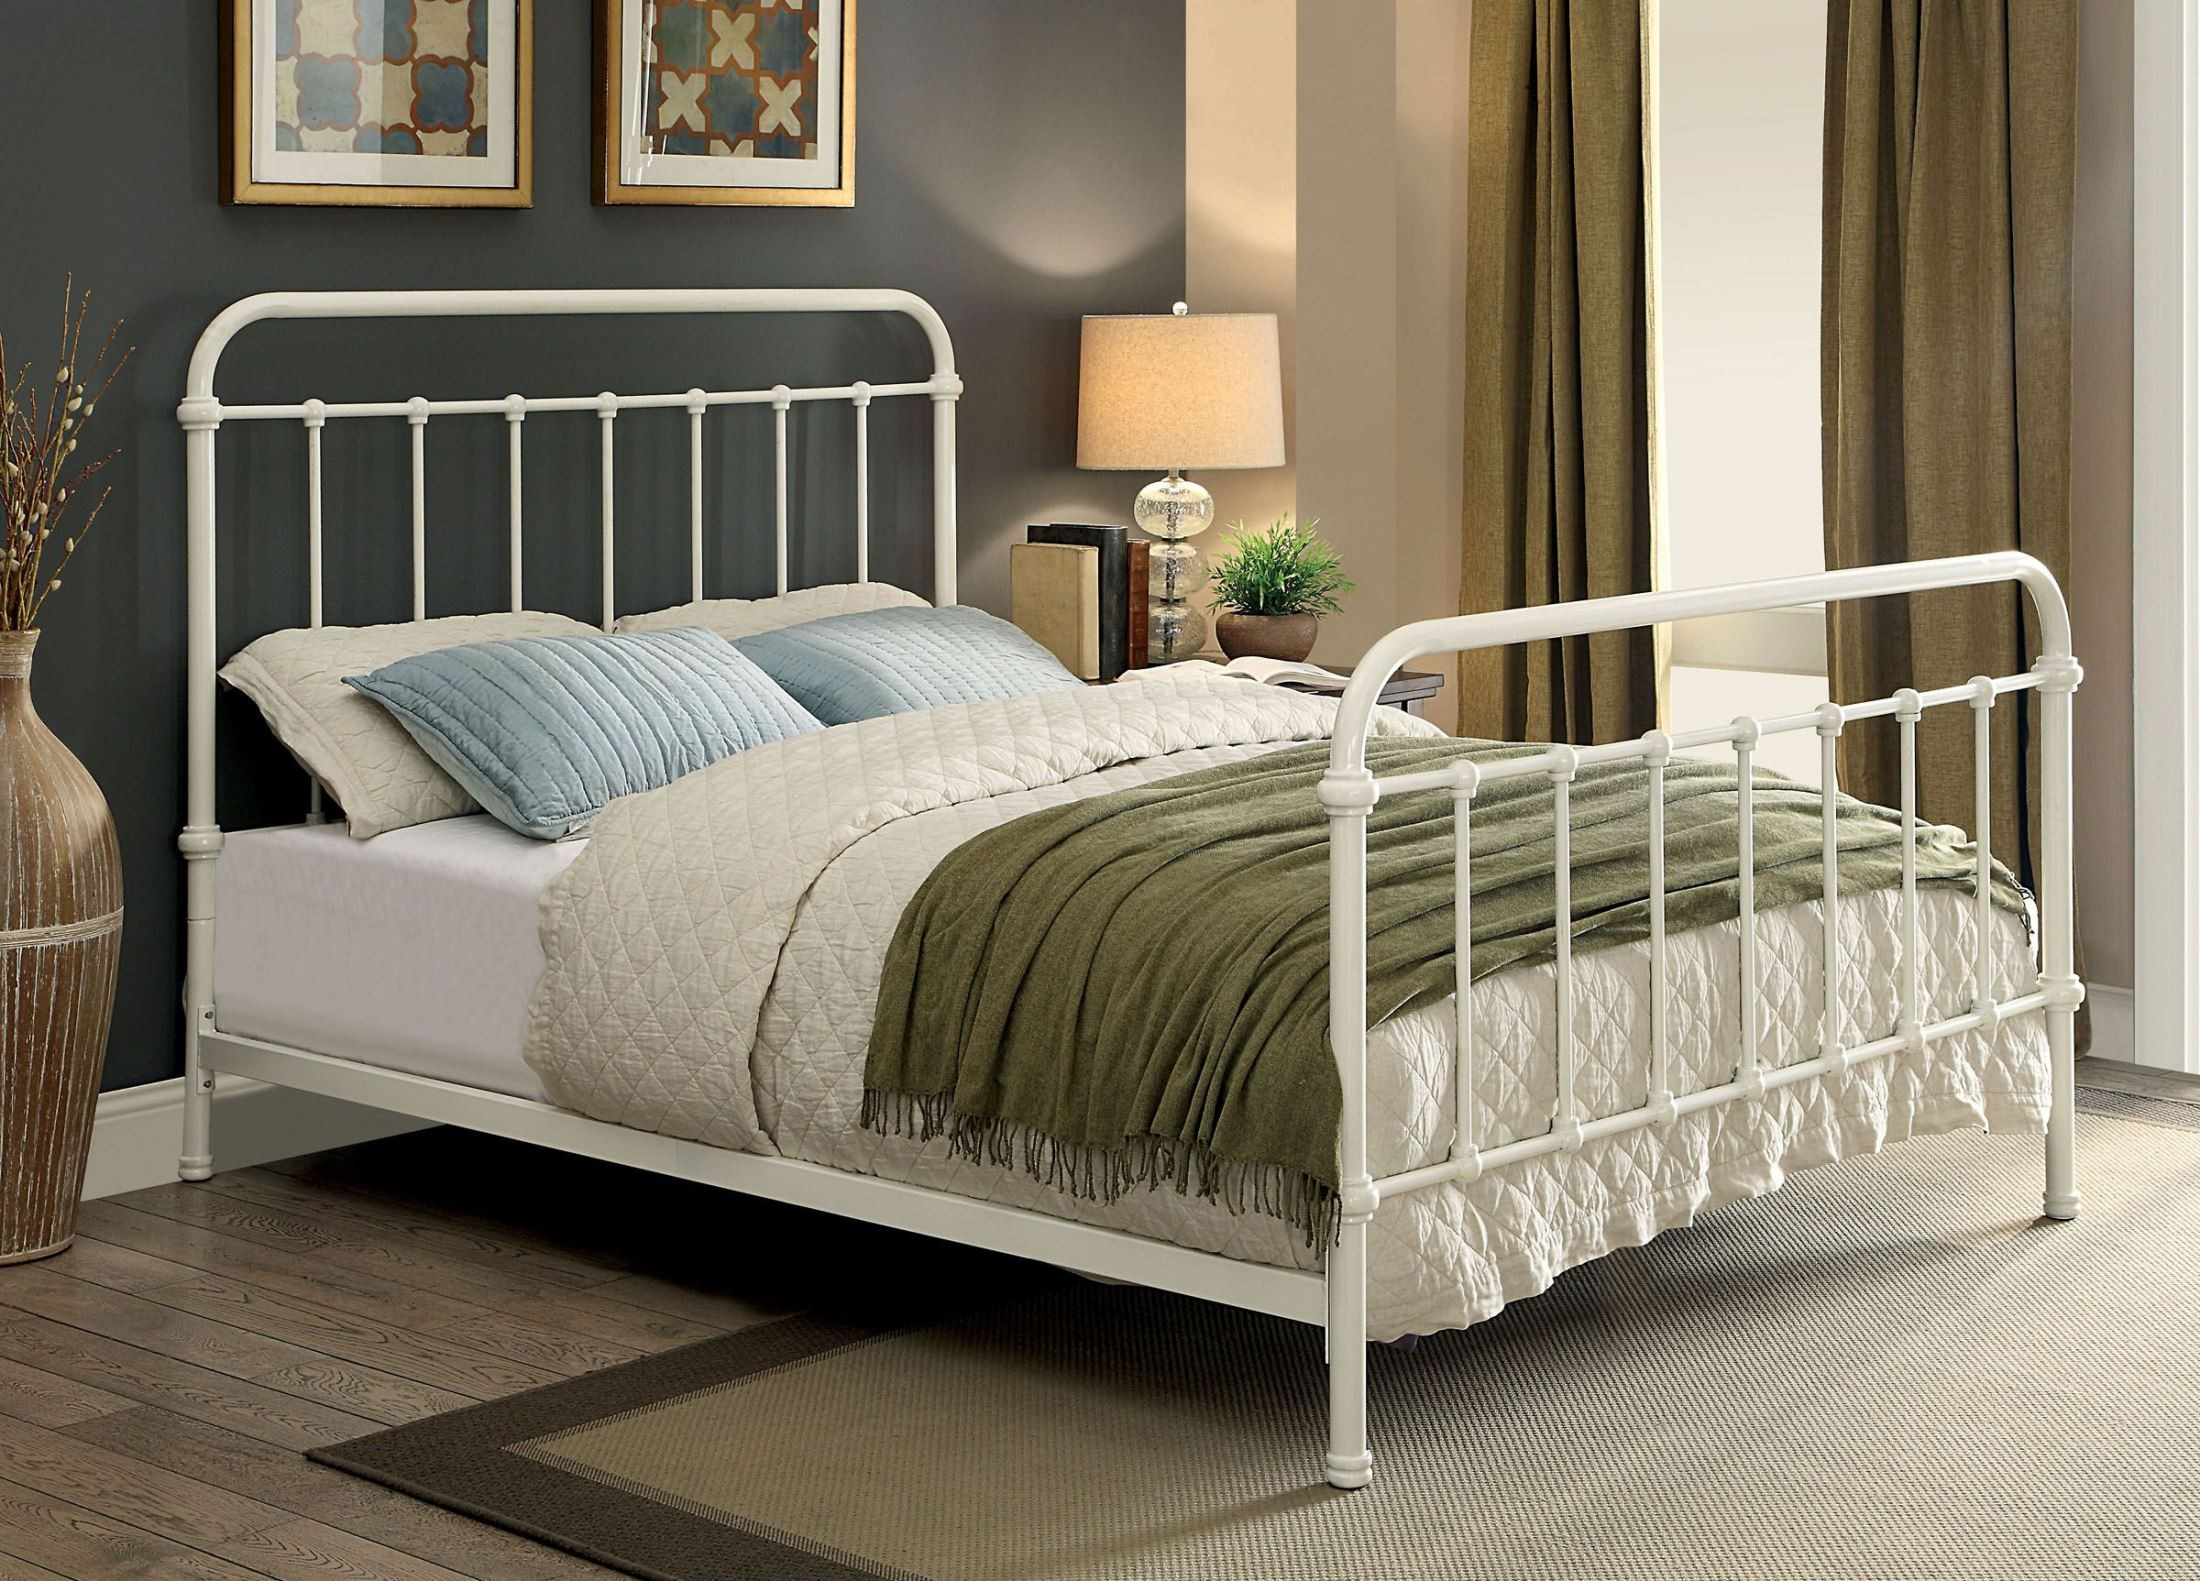 Iria White Metal Queen Panel Bed From Furniture Of America Cm7701wh Q Coleman Furniture